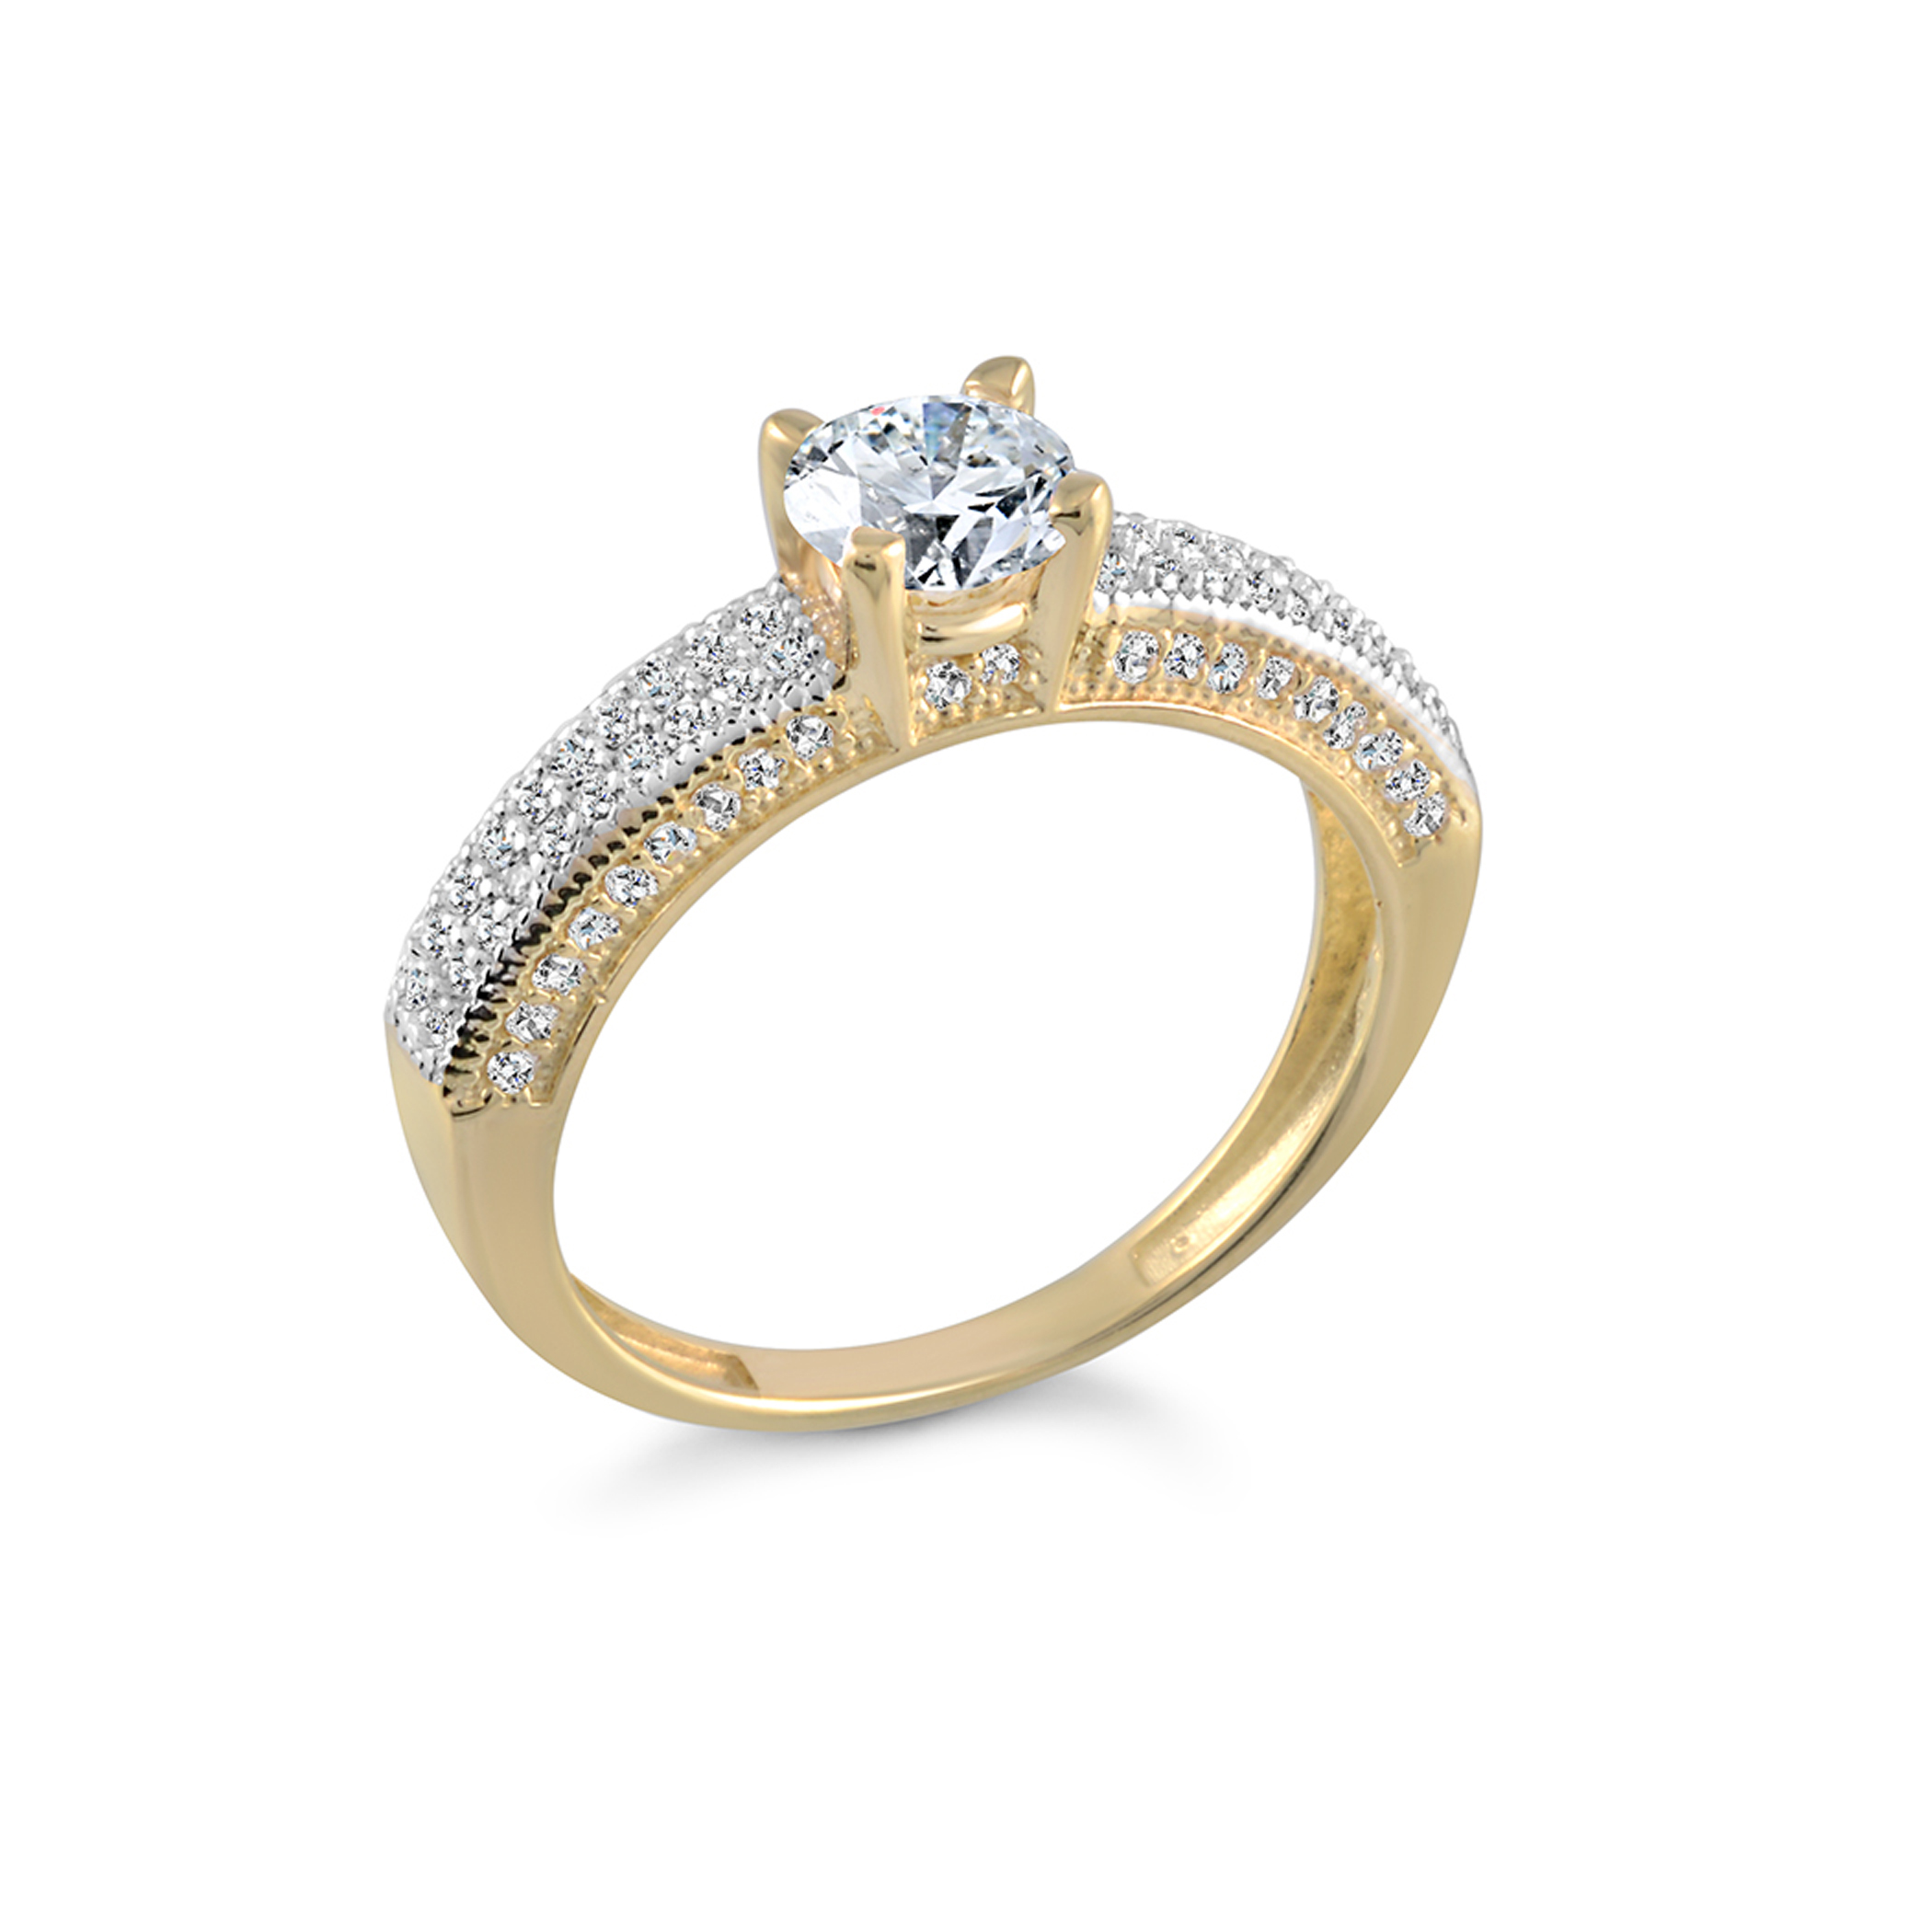 Engagement ring - 10K yellow Gold & Cubic zirconia